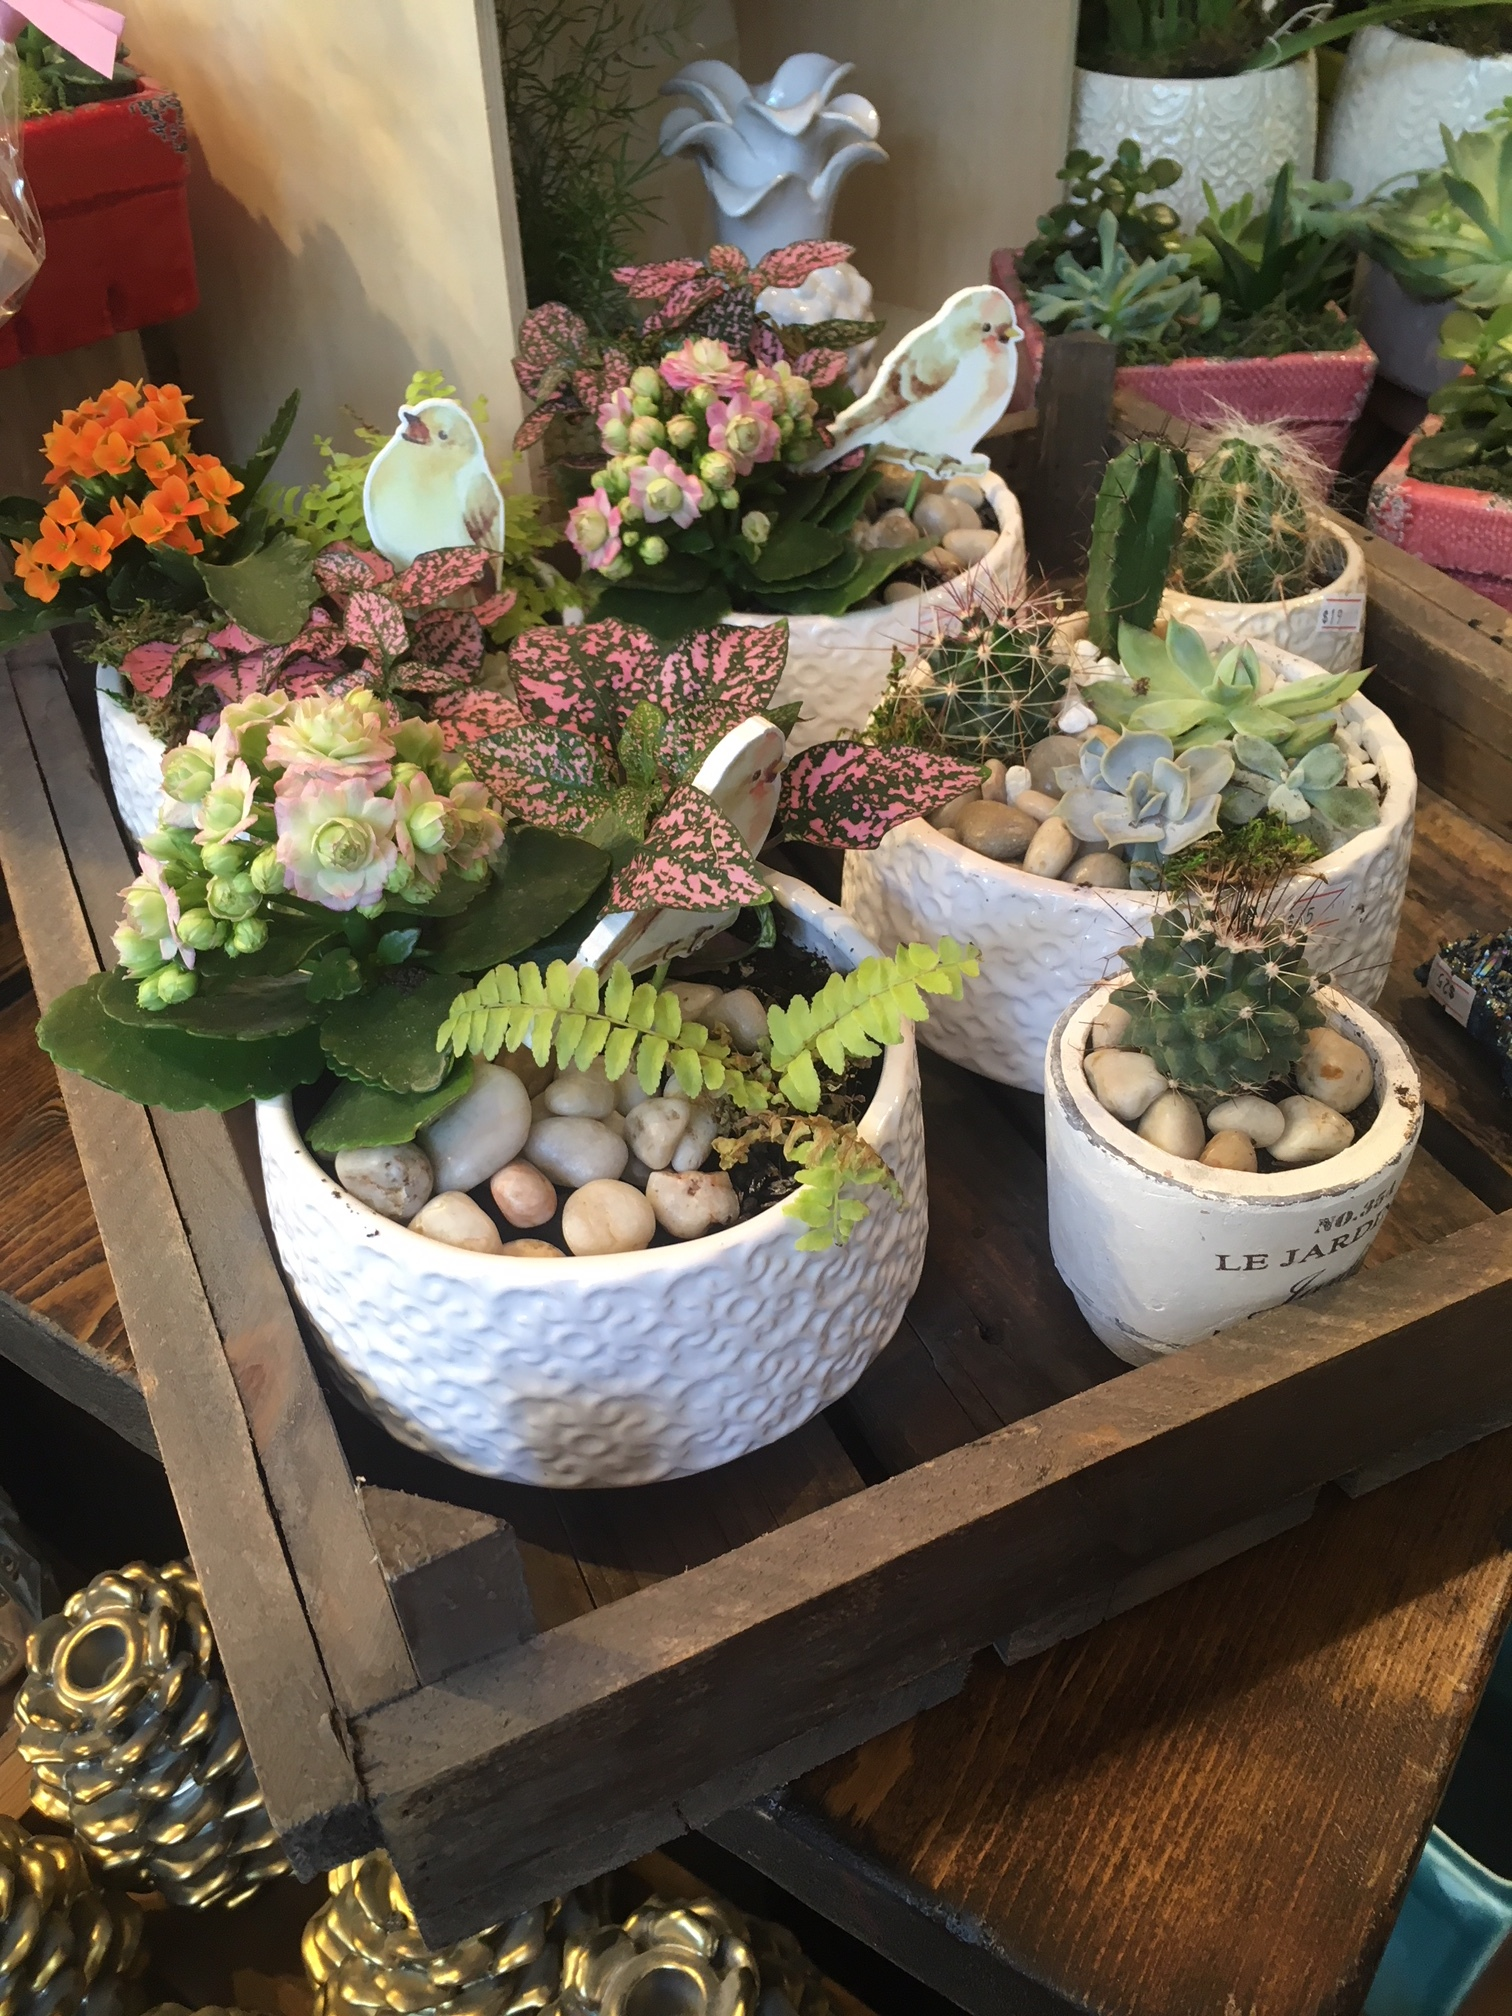 Small Dish Garden - We have an assortment of prearranged gardens from $14-$50. The one pictured here is $33